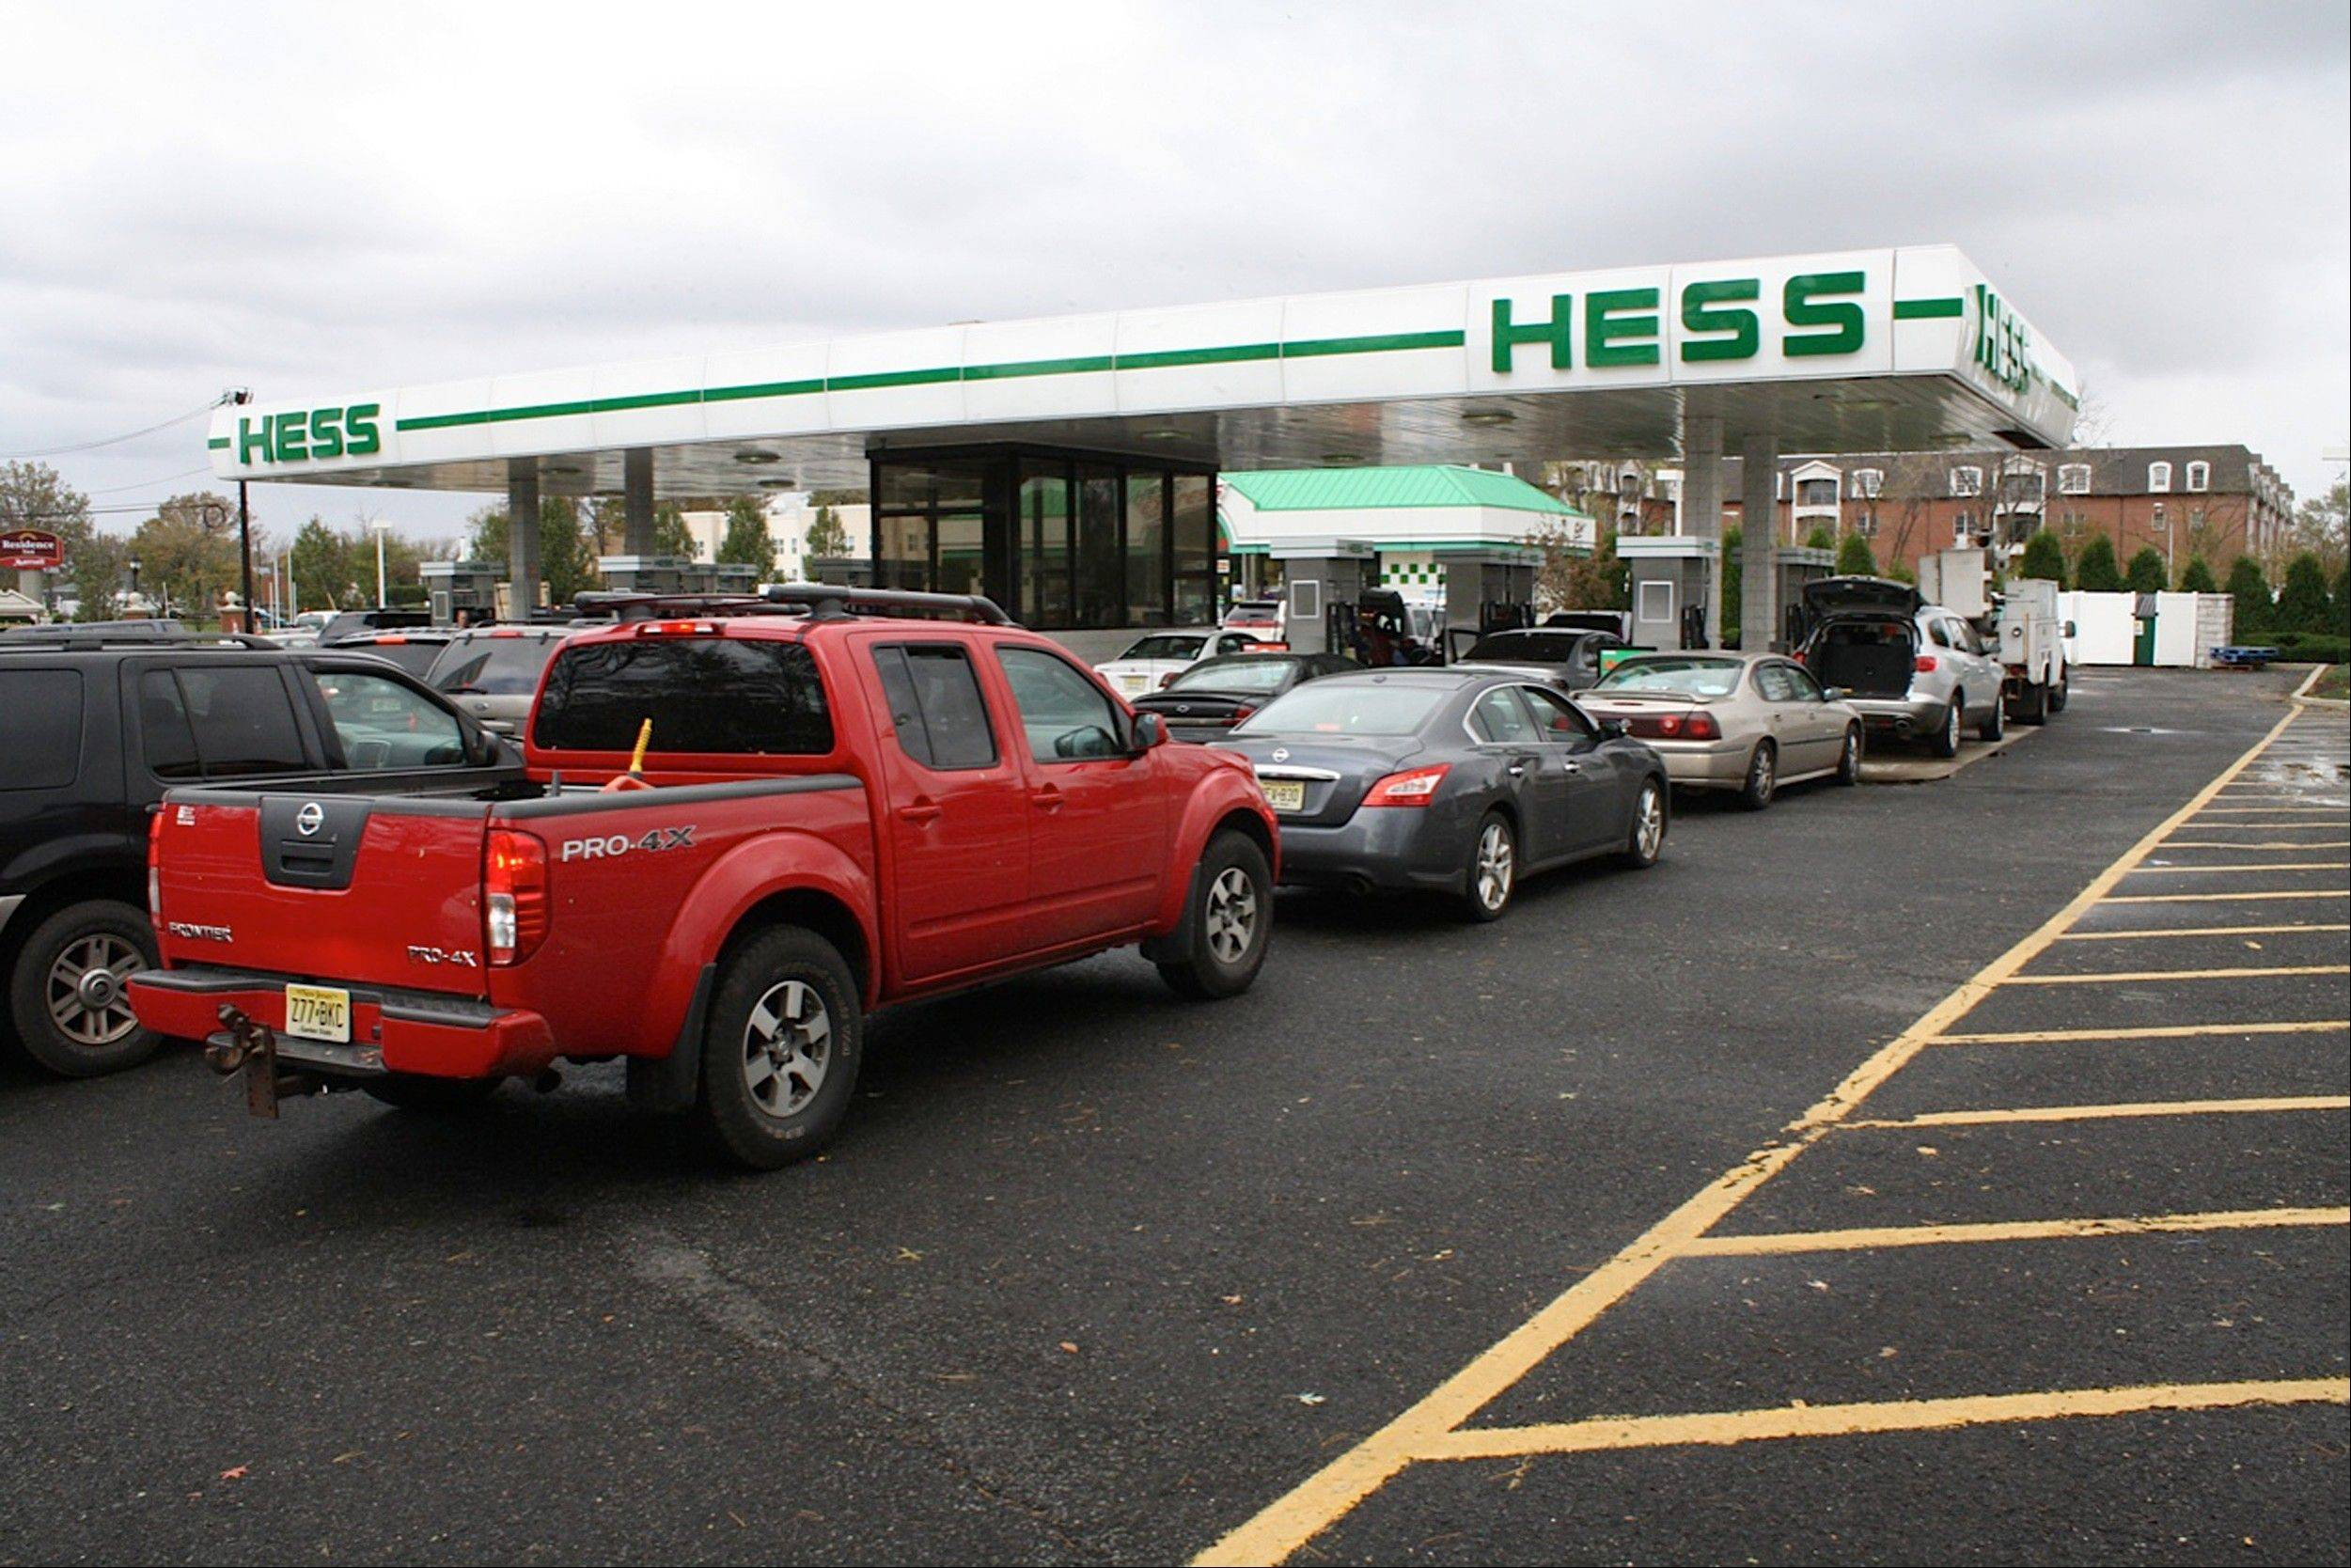 Cars line up for fuel at the Hess station on U.S. 9 North Woodbridge, N.J,